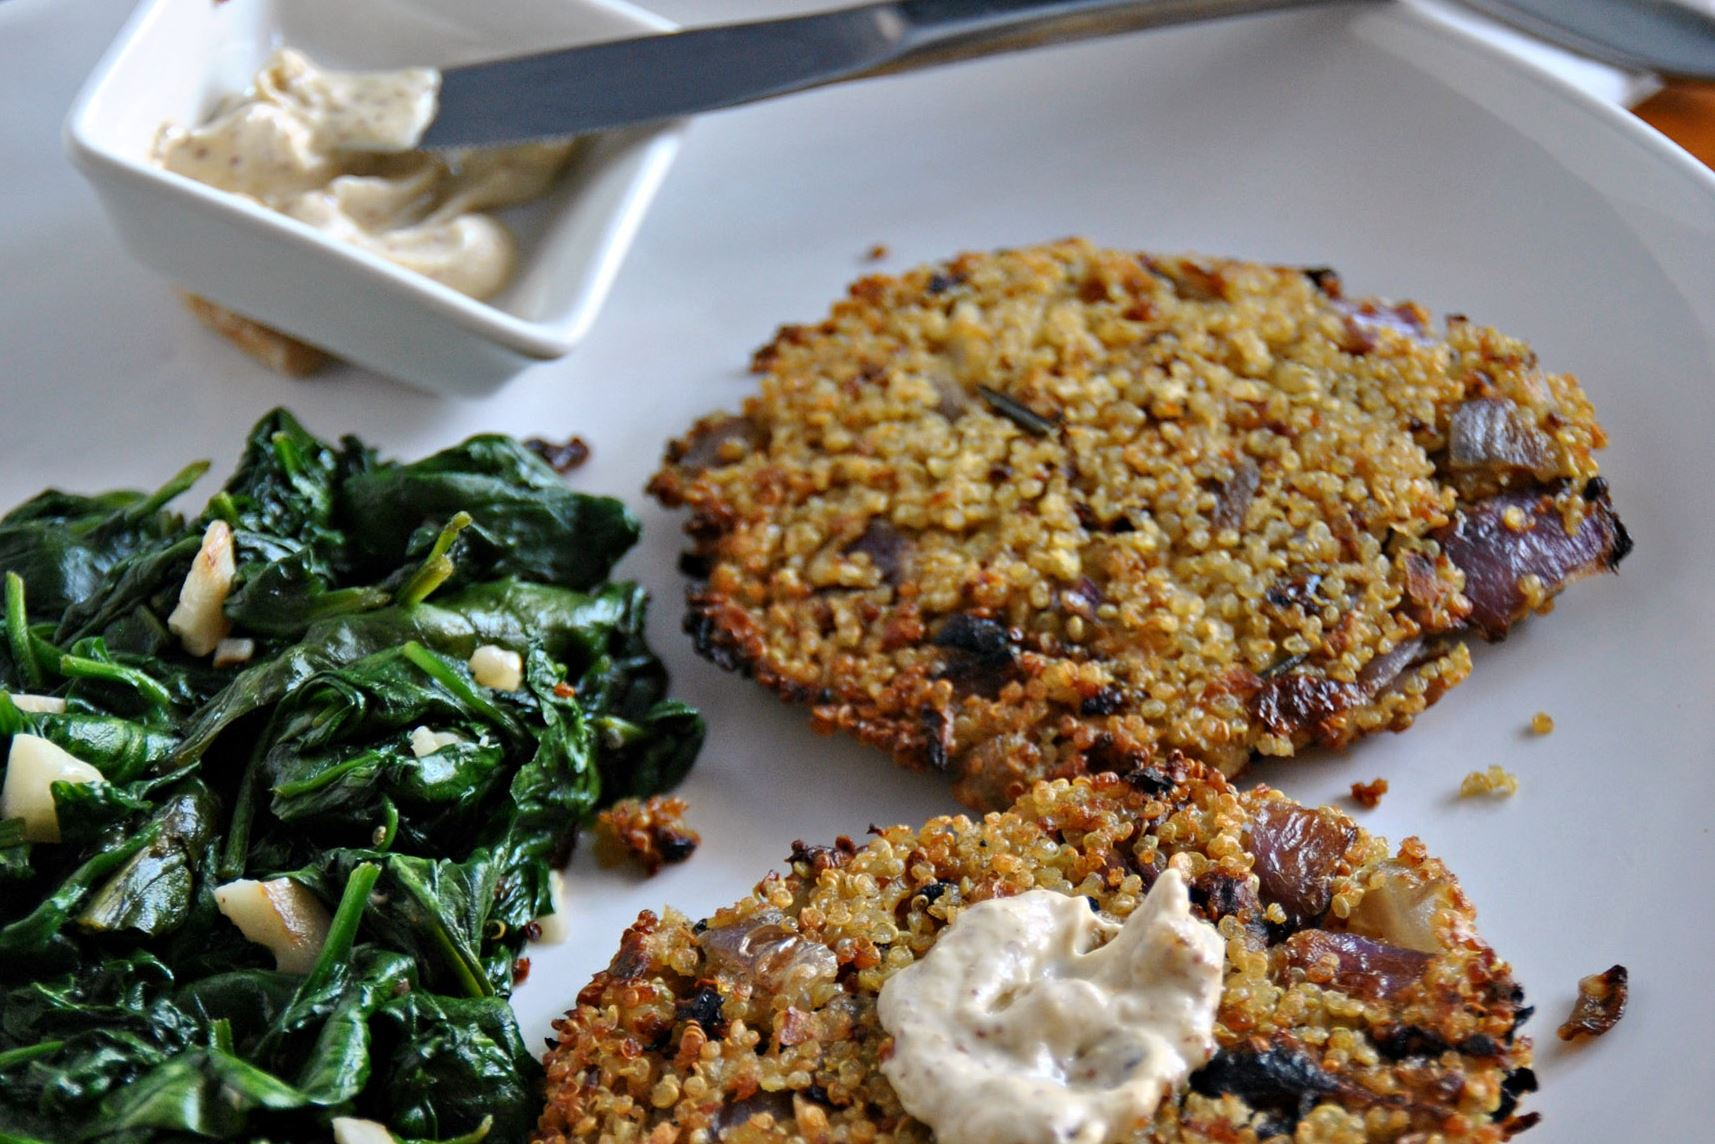 dinnerinabox0309-rutabaga-rosti-10 Purple Carrot's Rutabaga Rosti with Garlicky Balsamic Spinach.